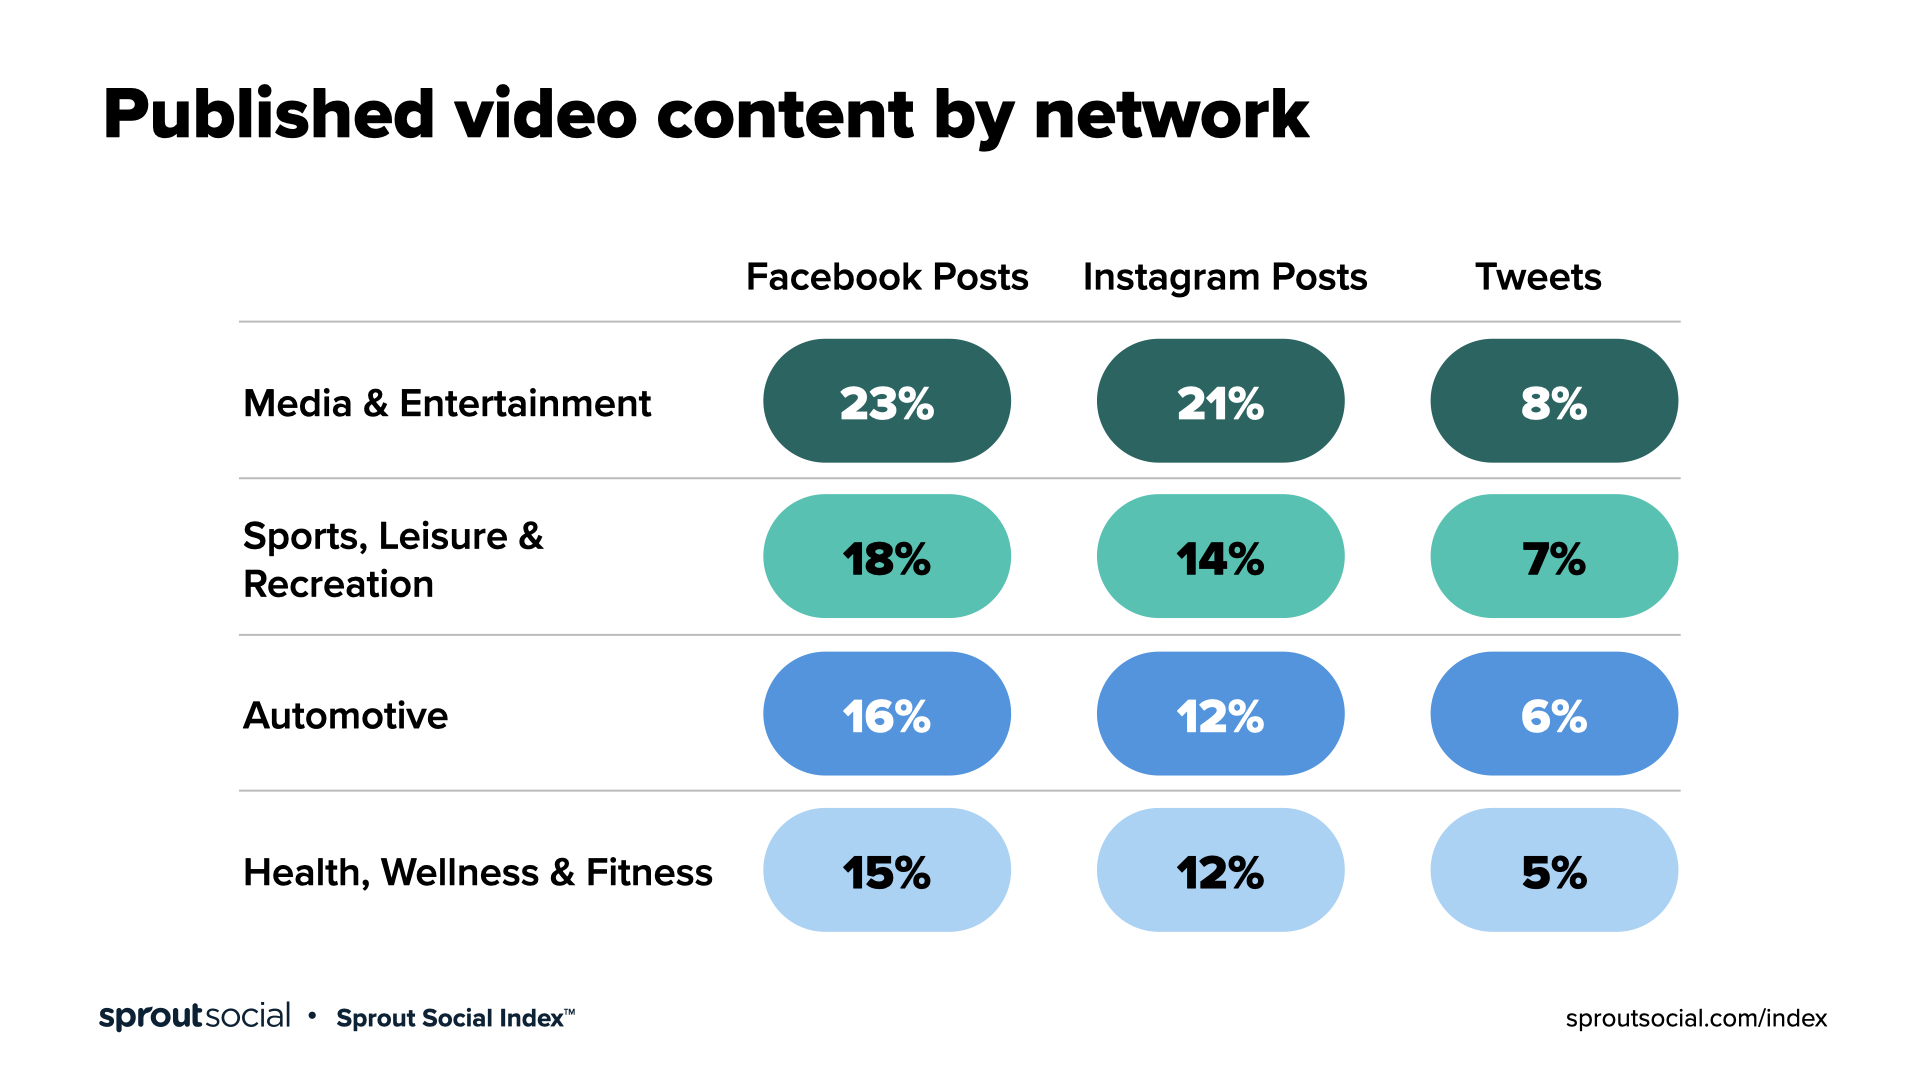 published video content by network, showing the most content published on FB and IG by media brands